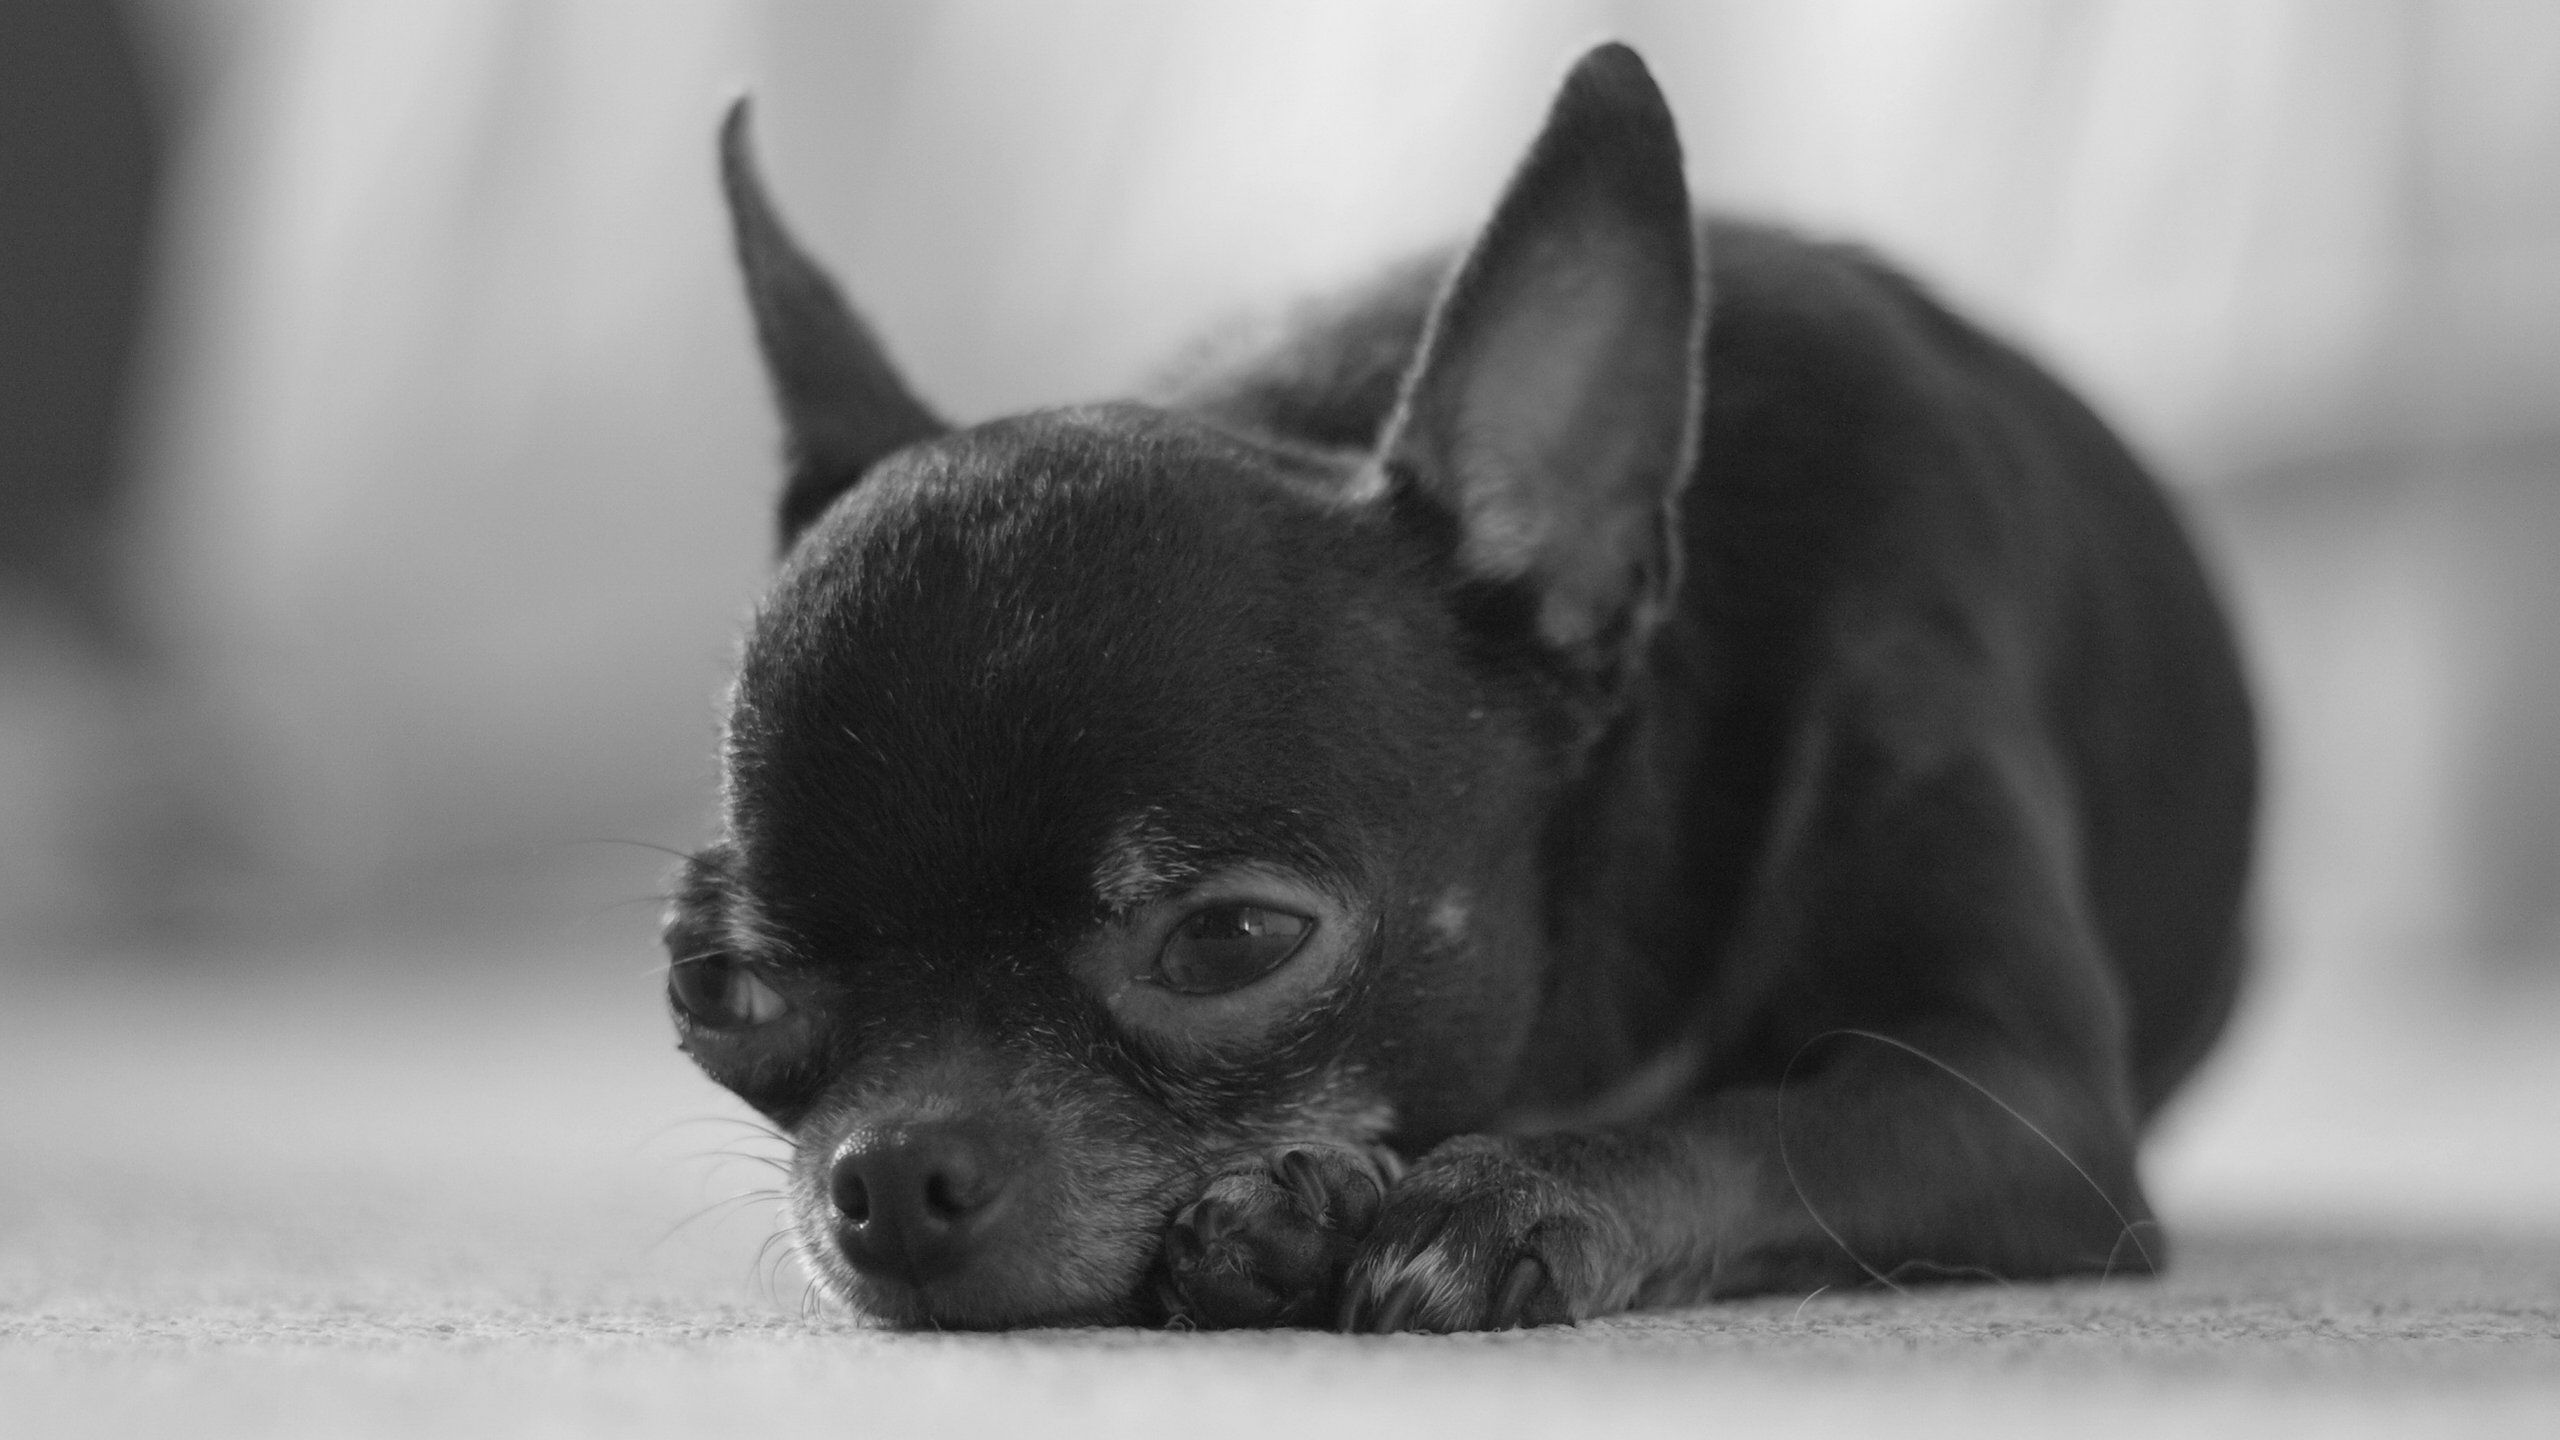 Black Chihuahua Dog Free Hd Picture Teacup Chihuahua Puppies Chihuahua Love Kittens And Puppies